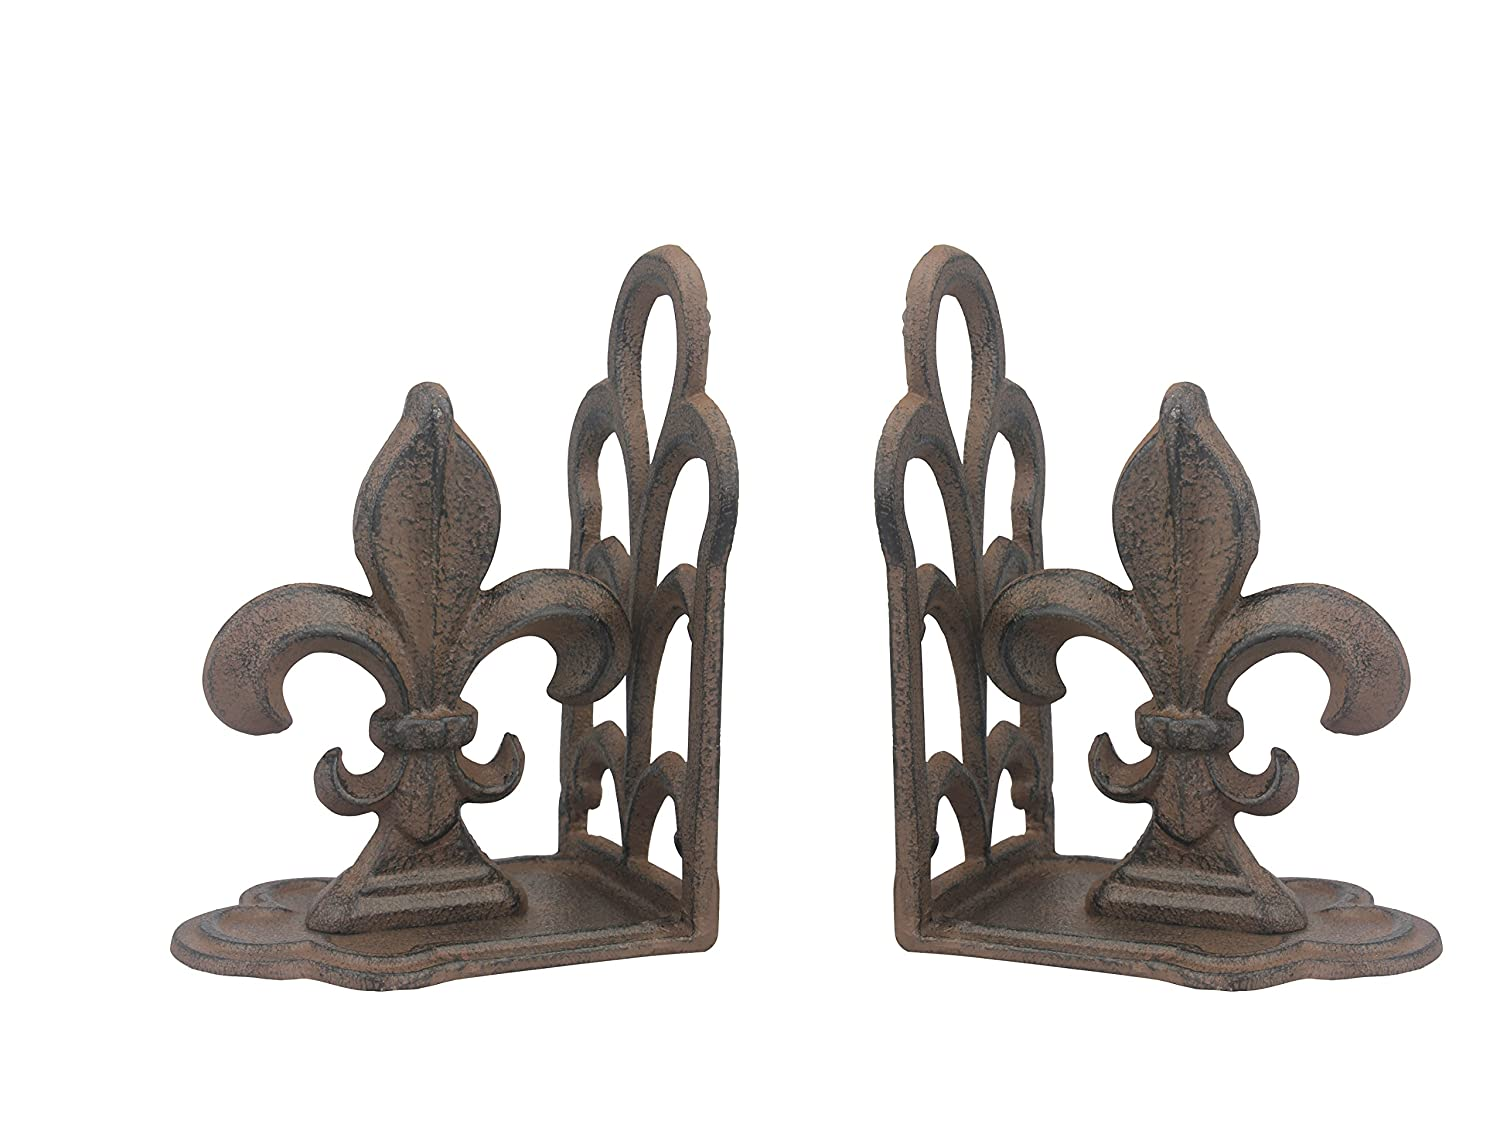 Stonebriar Rustic Cast Fleur de Lis Bookends, Set of 2 CKK Home Décor SB-5027A